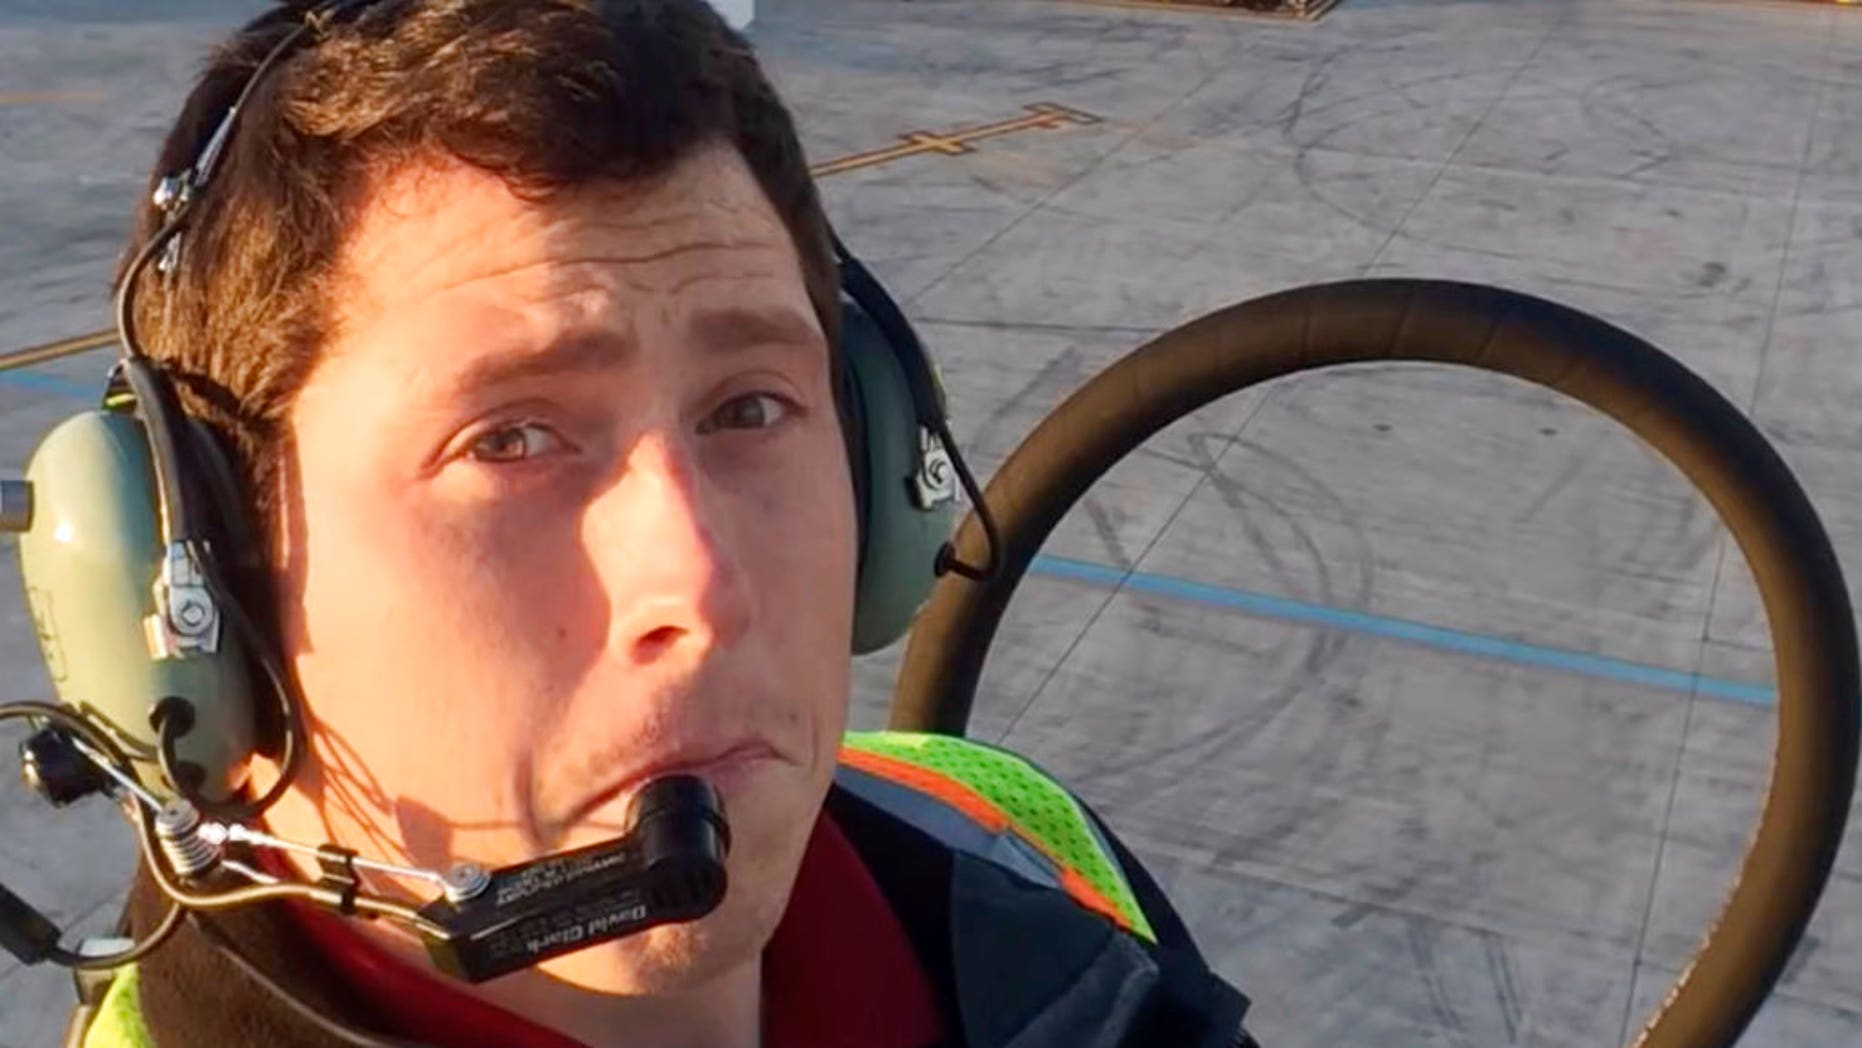 This undated image posted to Richard Russell's YouTube channel shows Russell, an airline ground agent. Investigators are piecing together how Russell stole an empty commercial airplane, took off from Sea-Tac International Airport in Seattle, and crashed into a small island in the Puget Sound in Washington. (Richard Russell/YouTube via AP)